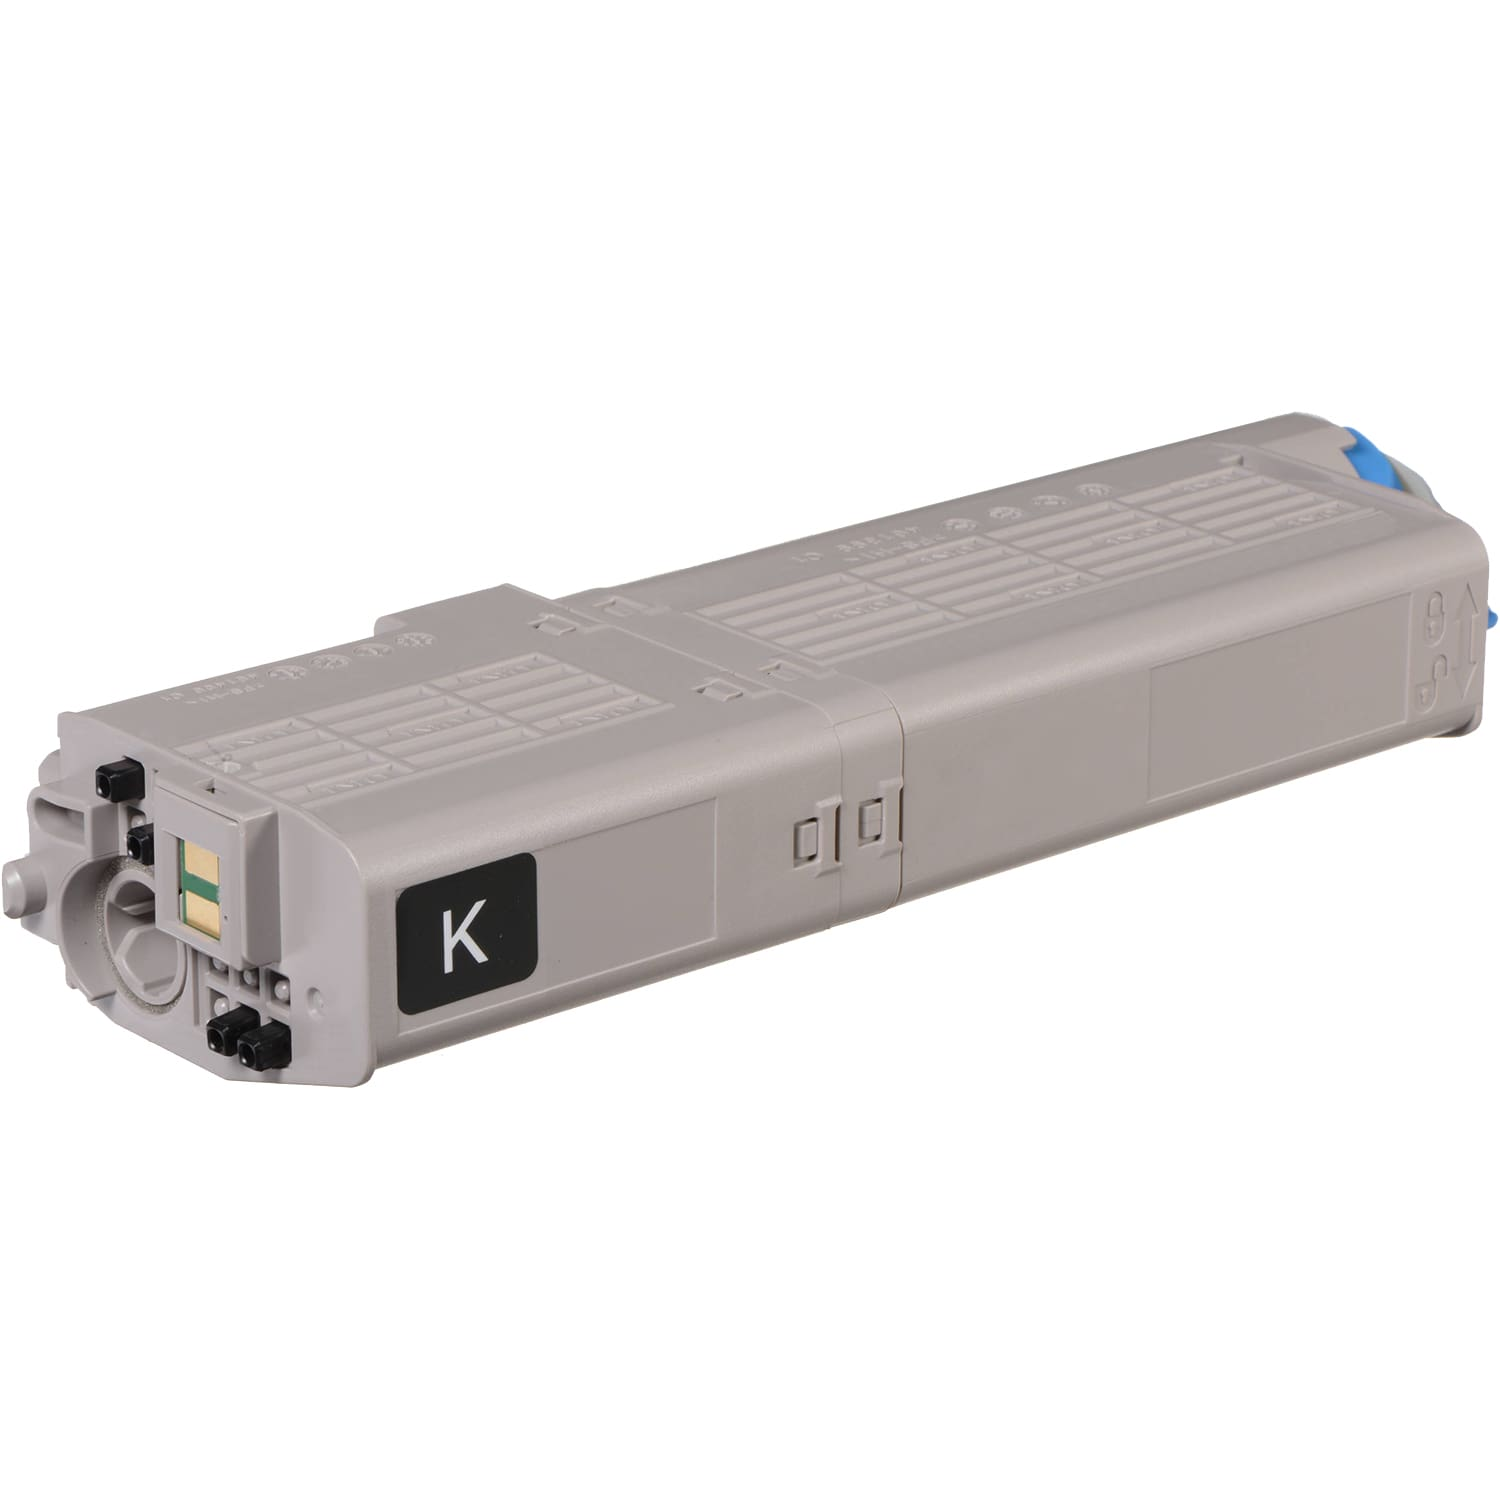 46490604 Toner Cartridge - Okidata Compatible (Black)